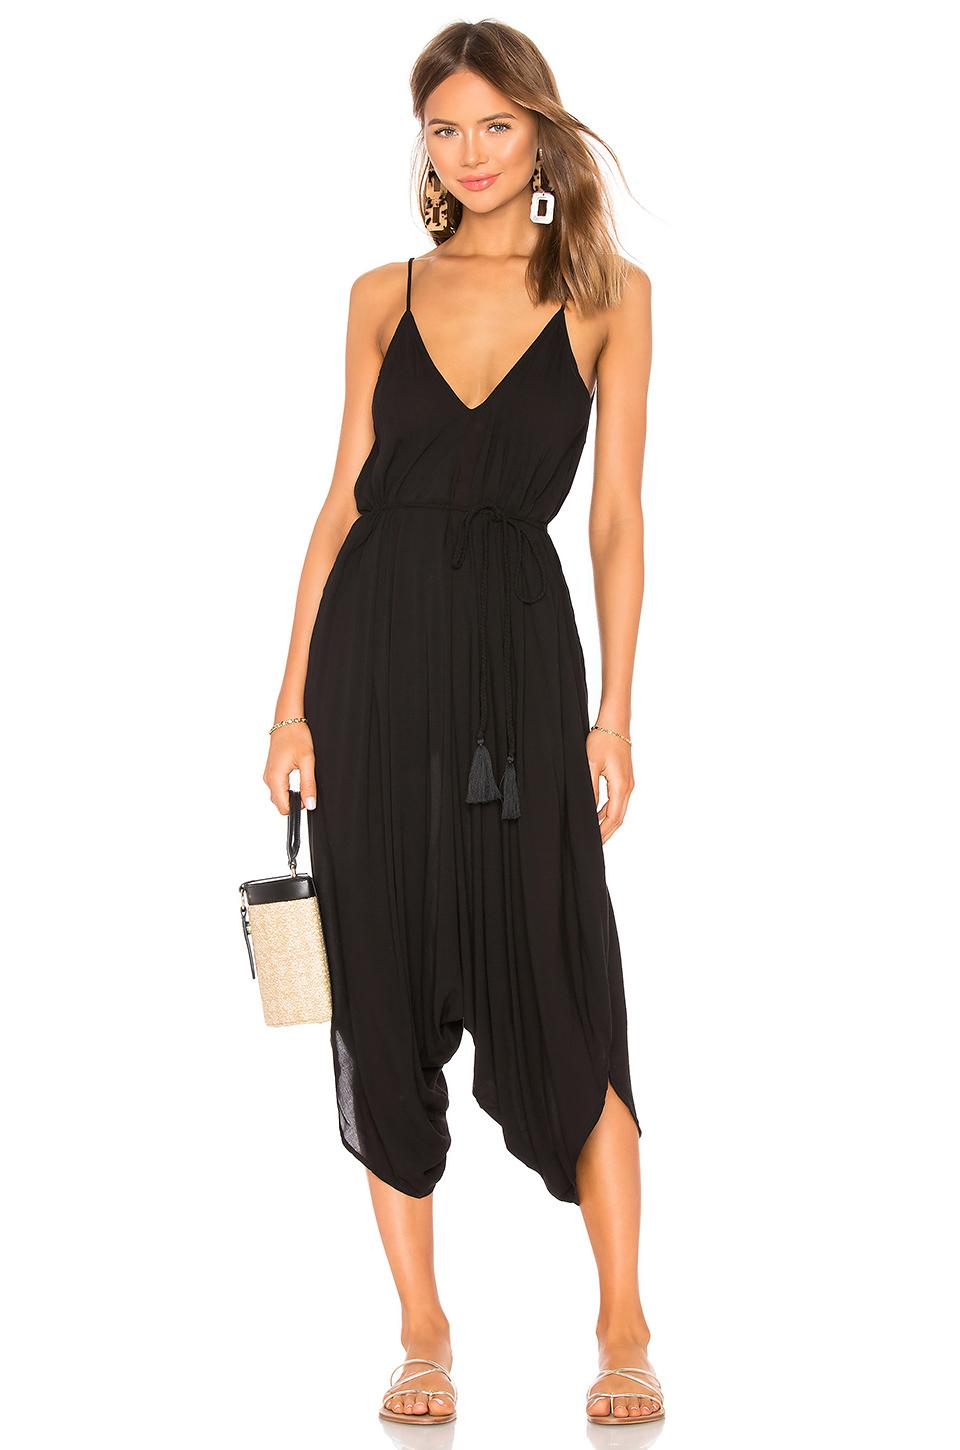 75b39c193544 Lyst - Indah Ivory All In One Jumpsuit in Black